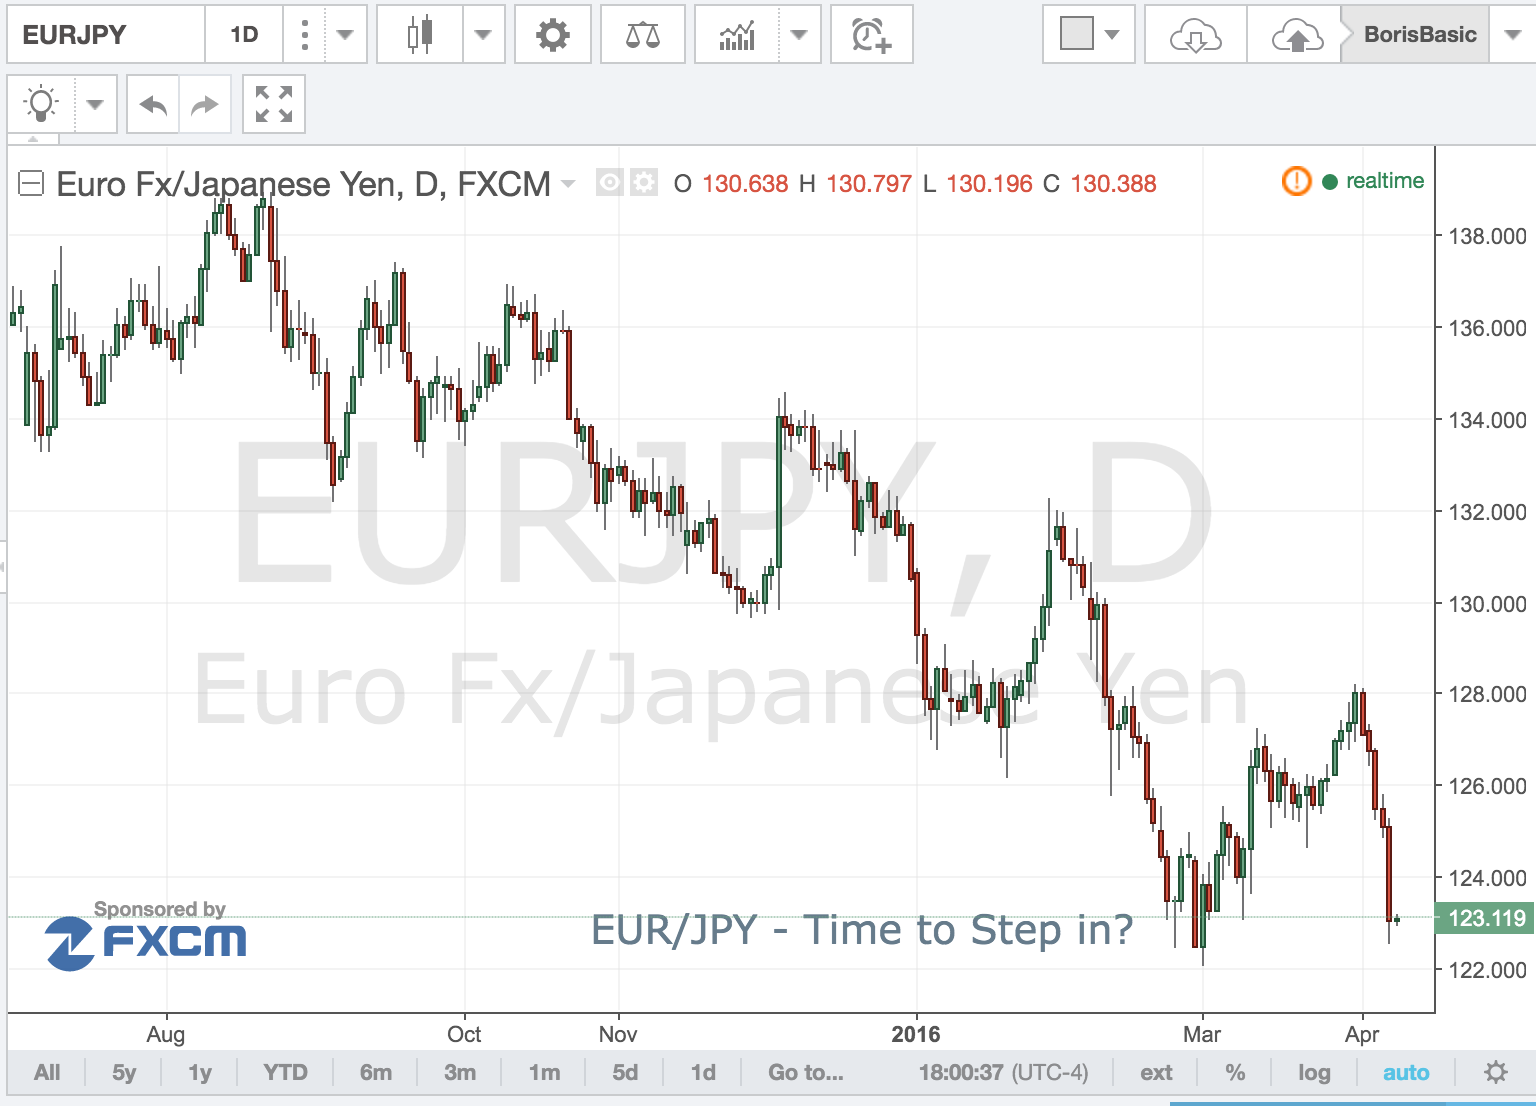 EUR/JPY Time To Step In?